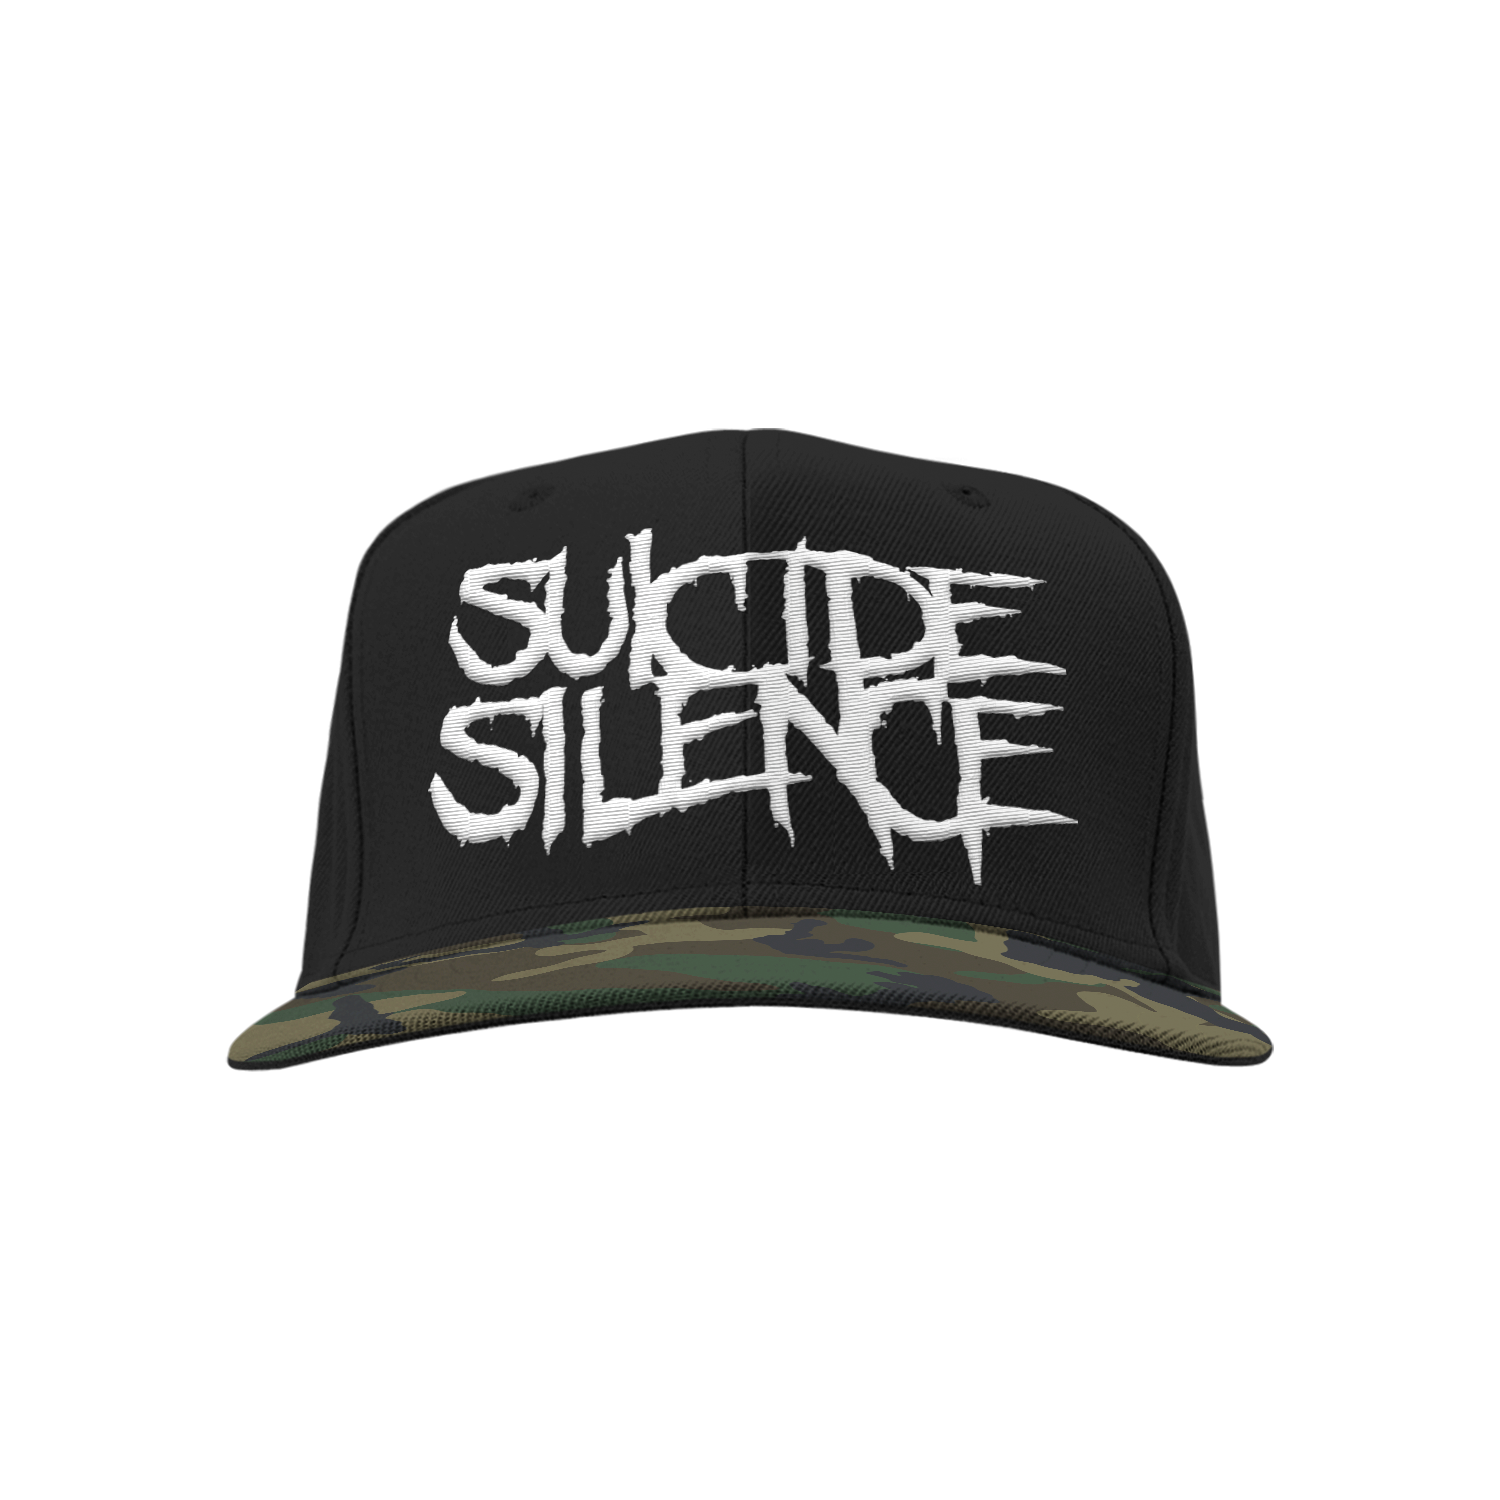 Official Suicide Silence Store Mosh Hat, Official Merch, Official Store, Official Shop, Hoodies, Official Merchandise, T-shirts, Hoodies, Jackets, Shirts, Mitch Lucker, killermerch.com, Killer Merch